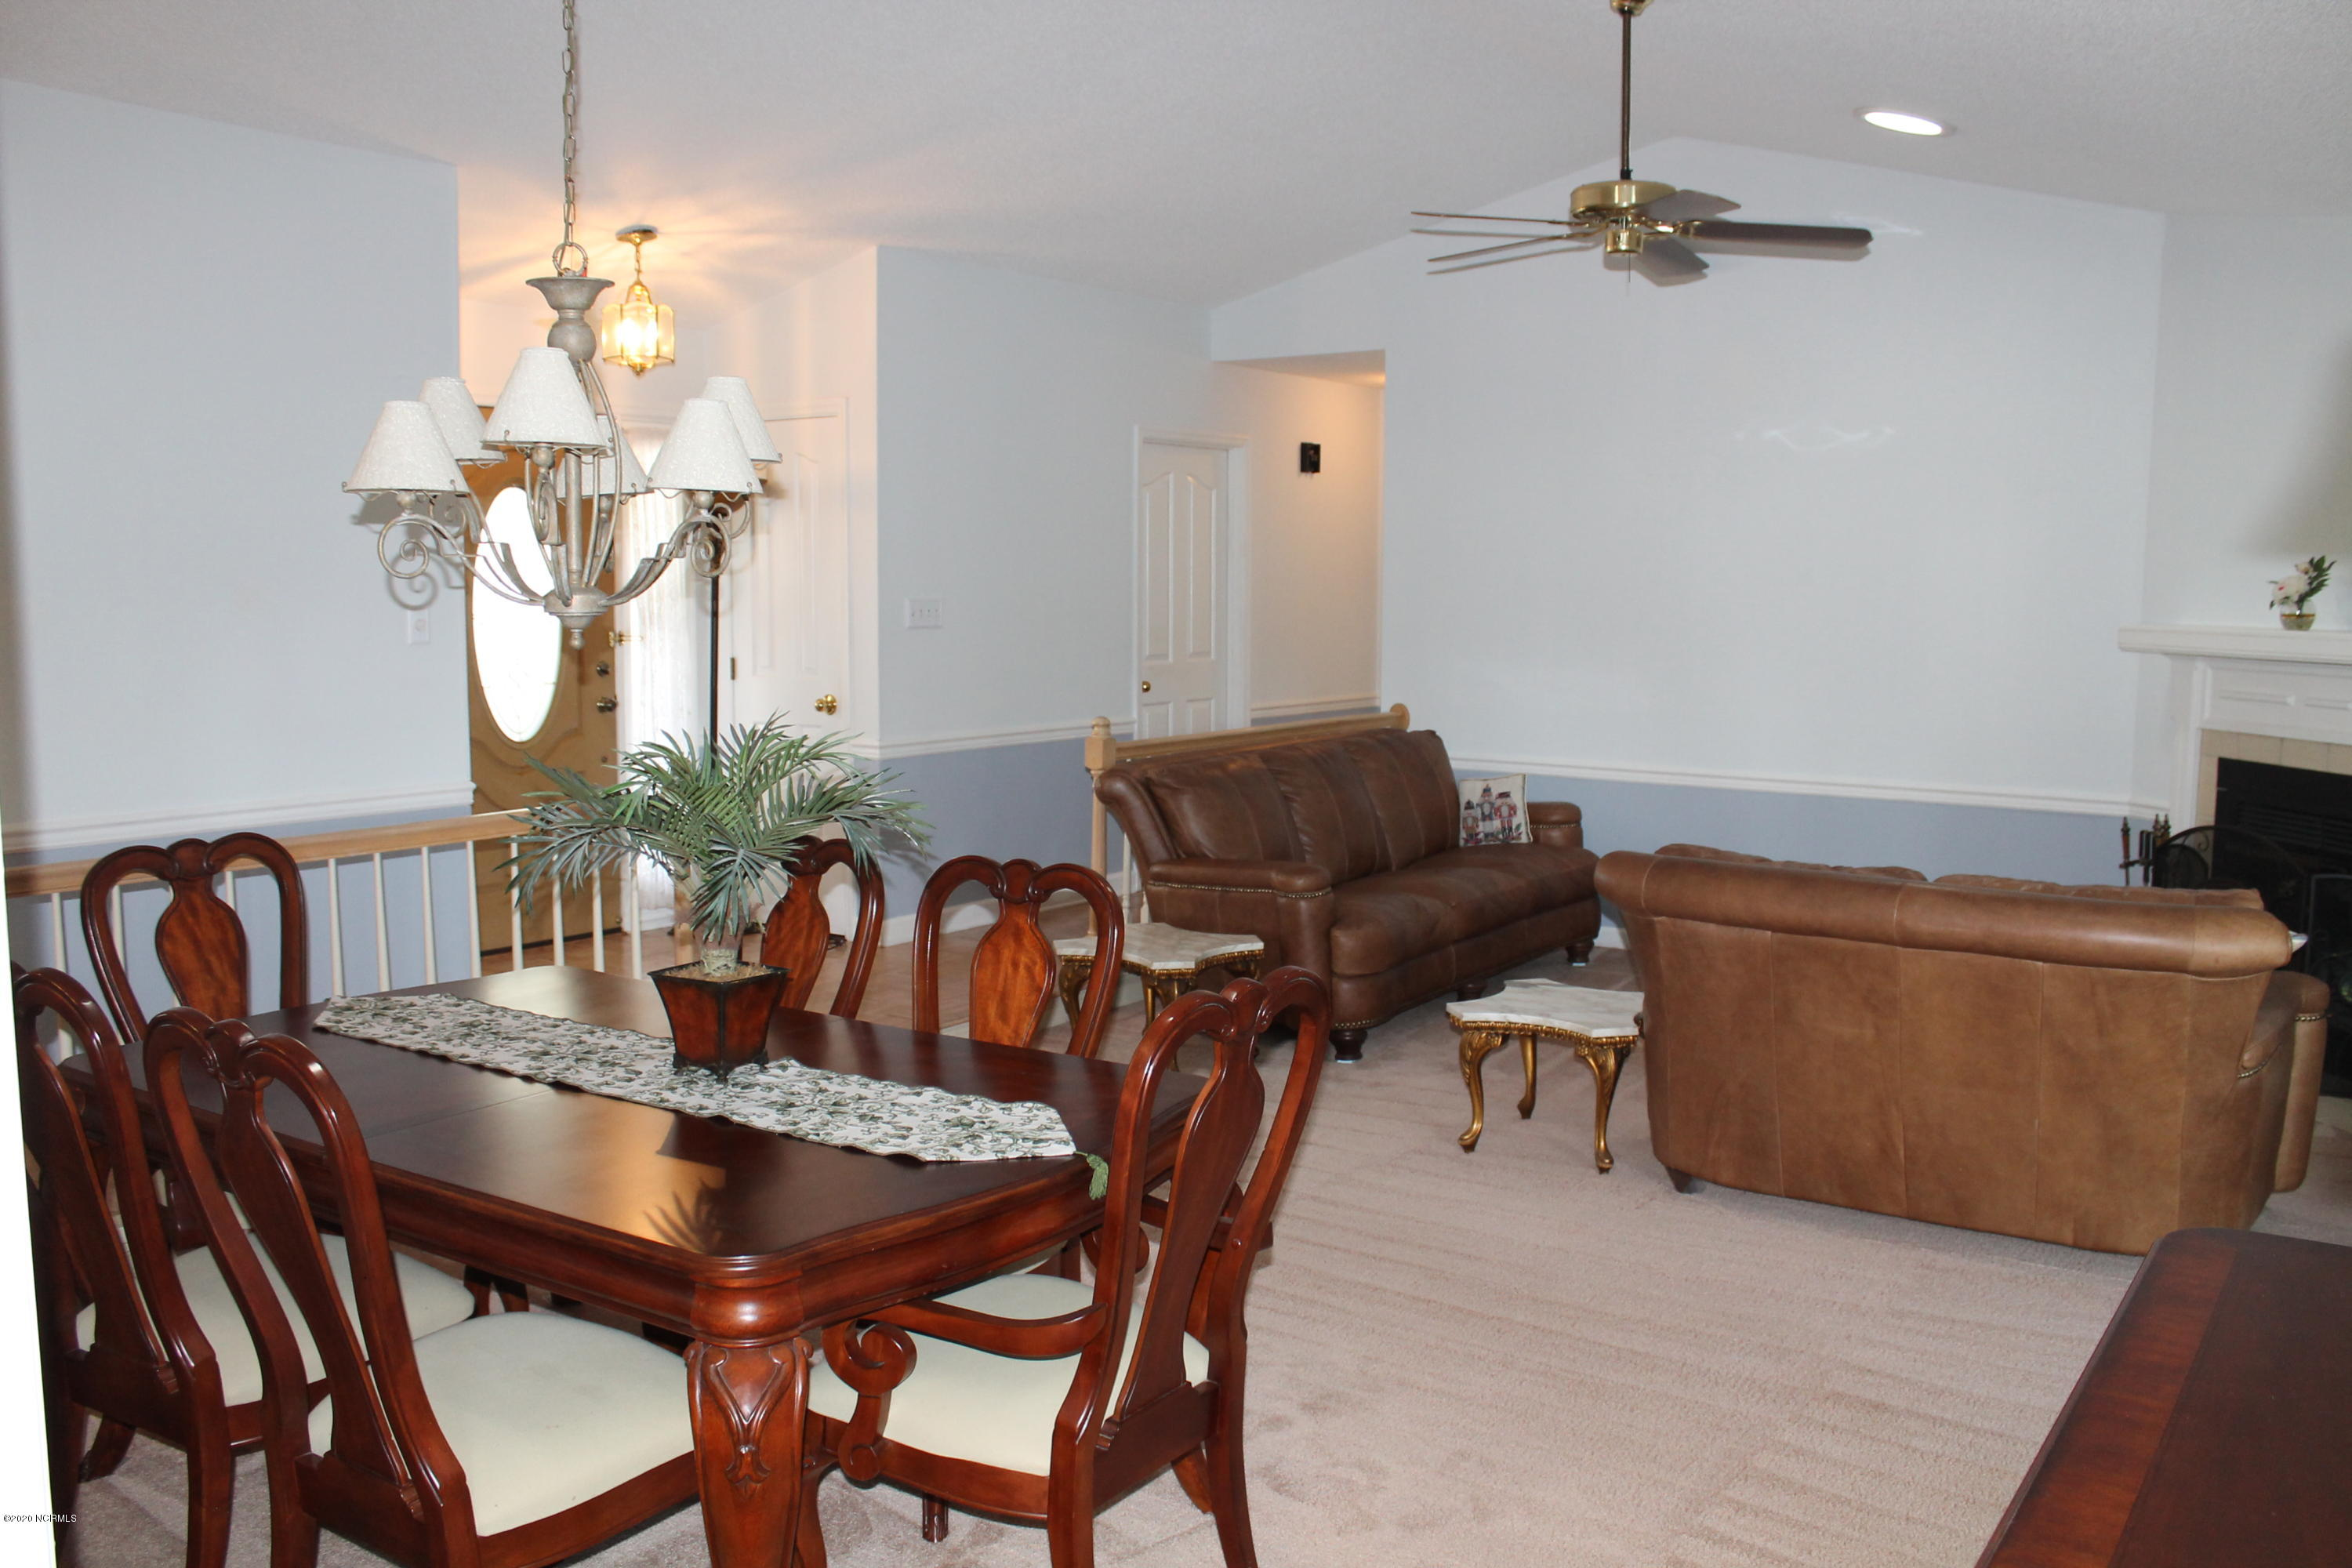 1315 Pelican Drive, New Bern, North Carolina 28560, 3 Bedrooms Bedrooms, 7 Rooms Rooms,2 BathroomsBathrooms,Single family residence,For sale,Pelican,100230991